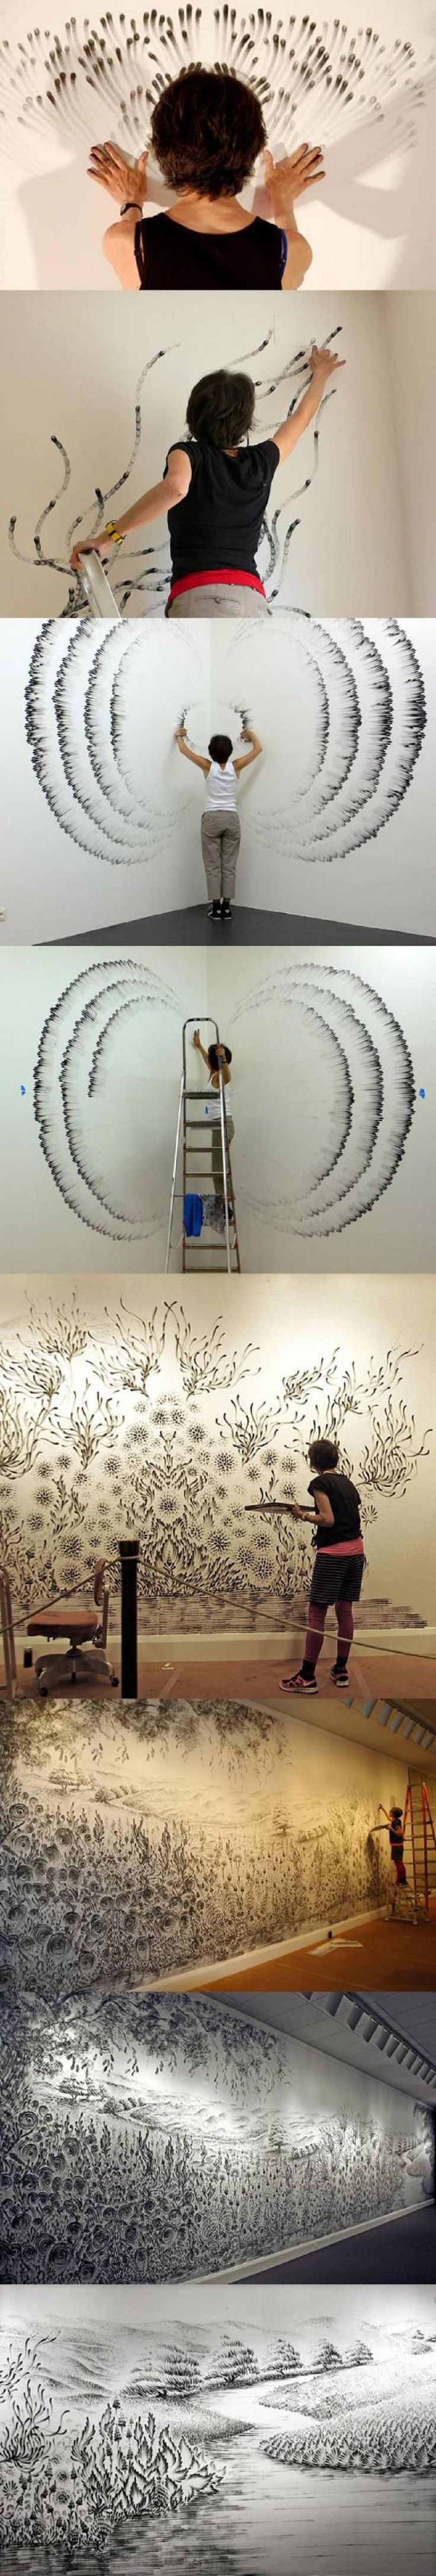 """Fingerings by Judith Braun: Symmetrical abstractions created with her fingers dipped in charcoal dust, often using both hands and arms simultaneously. """"#Judith_Braun @Elizabeth's Art Work"""